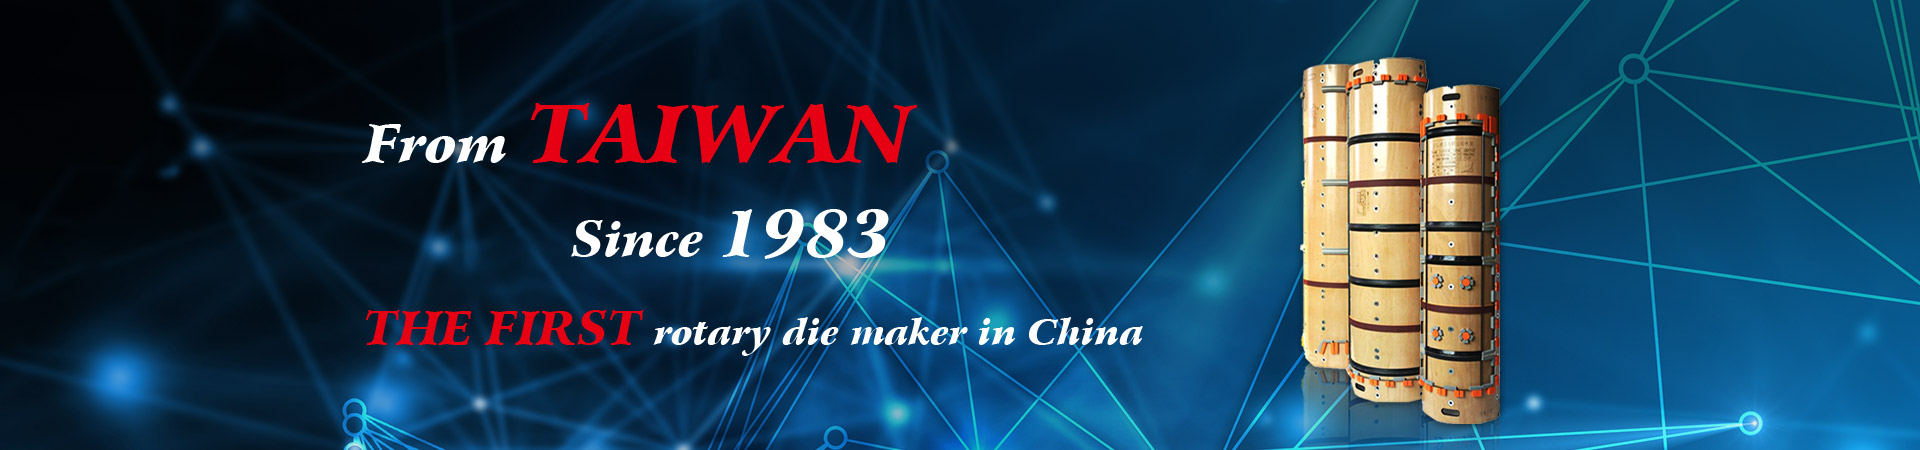 The first rotary die maker in China